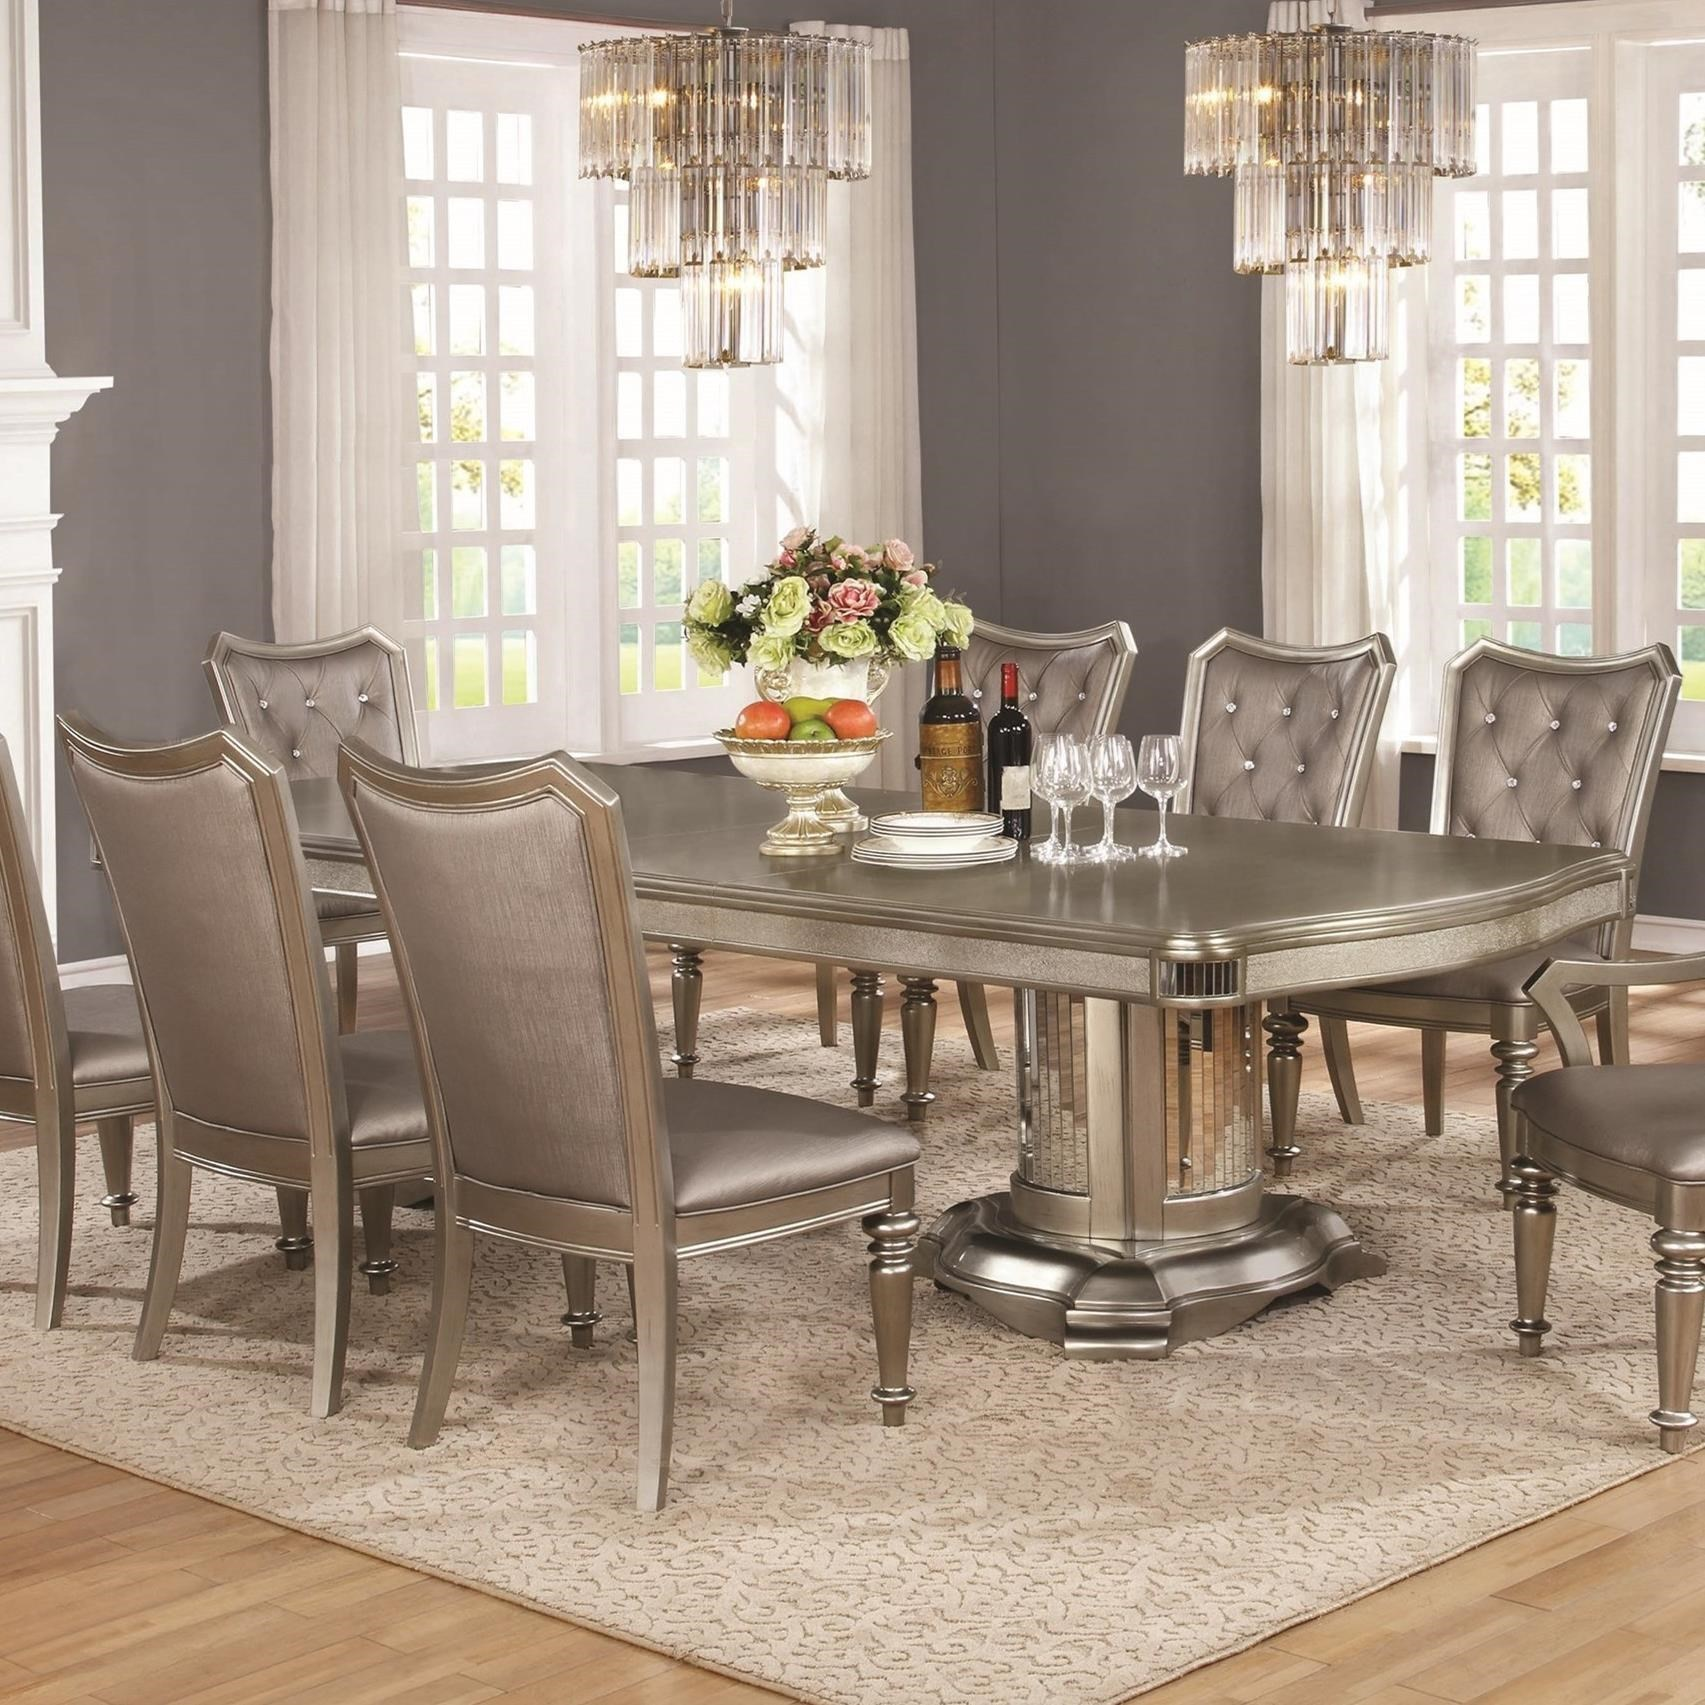 Pleasant Coaster Danette Metallic Platinum Dining Table Home Interior And Landscaping Ponolsignezvosmurscom